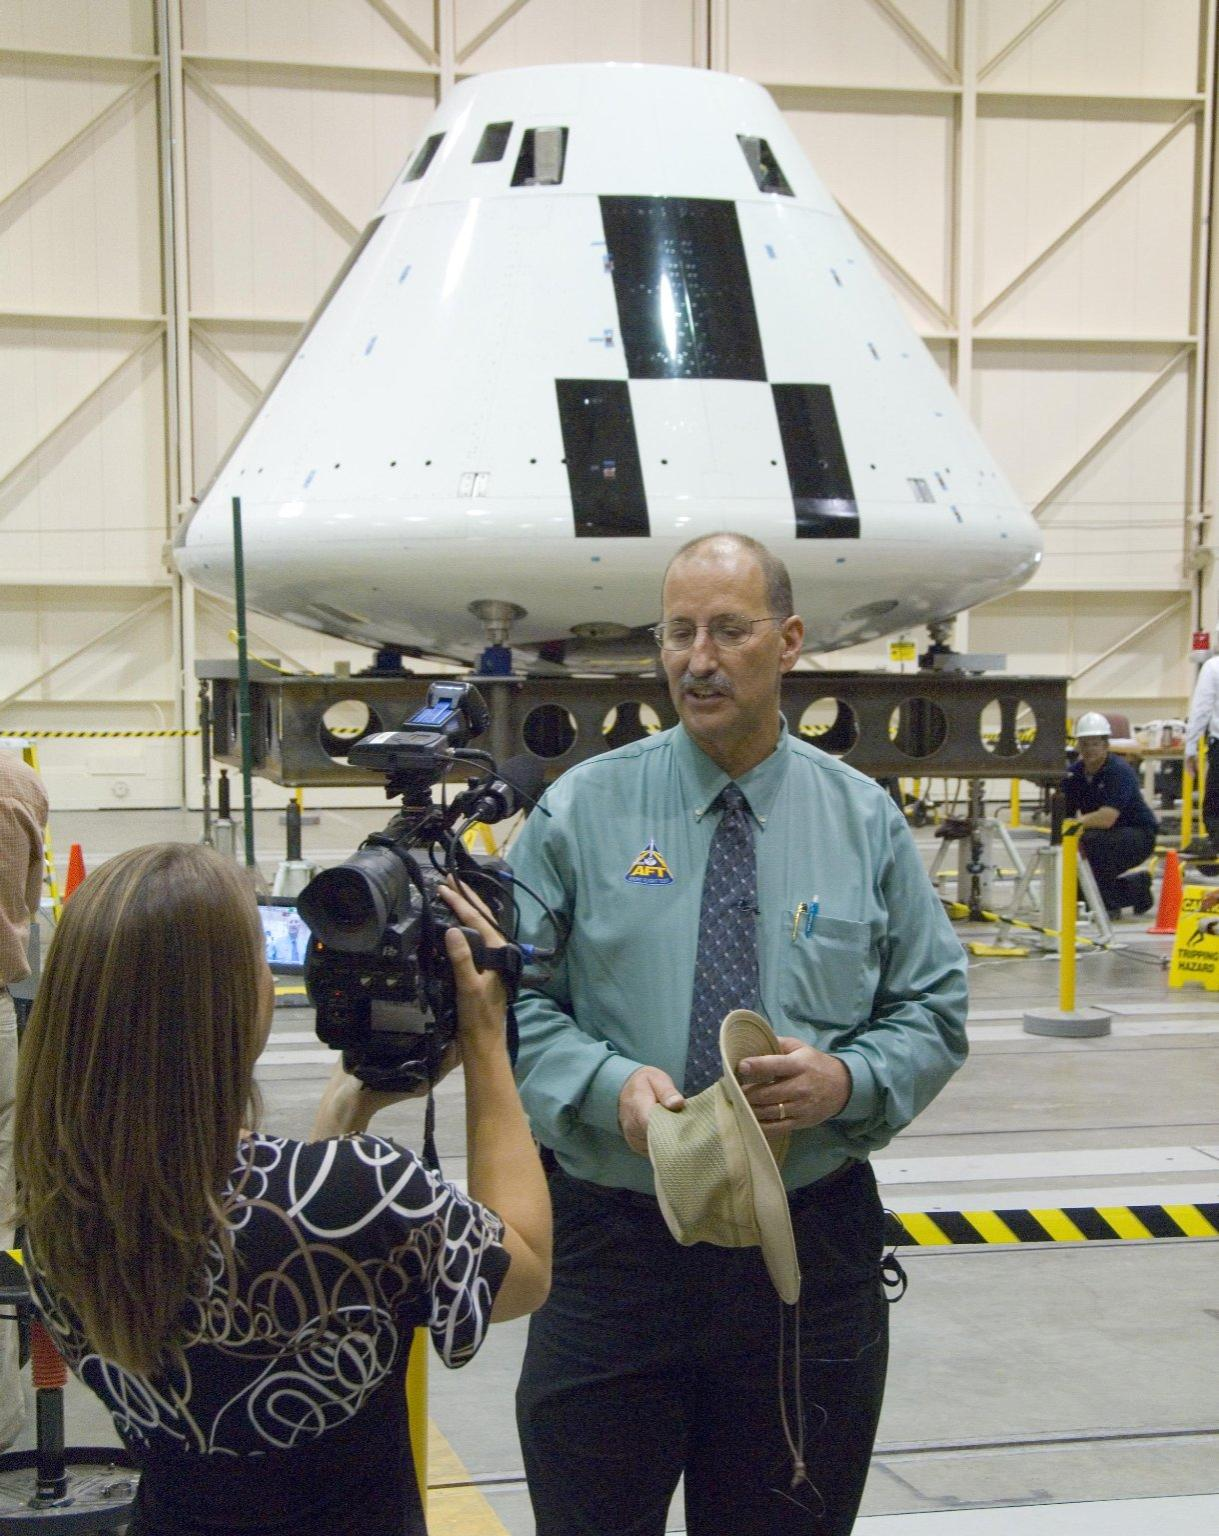 Orion AFT project manager Gary Martin is Interviewed in Front of the Crew Module.